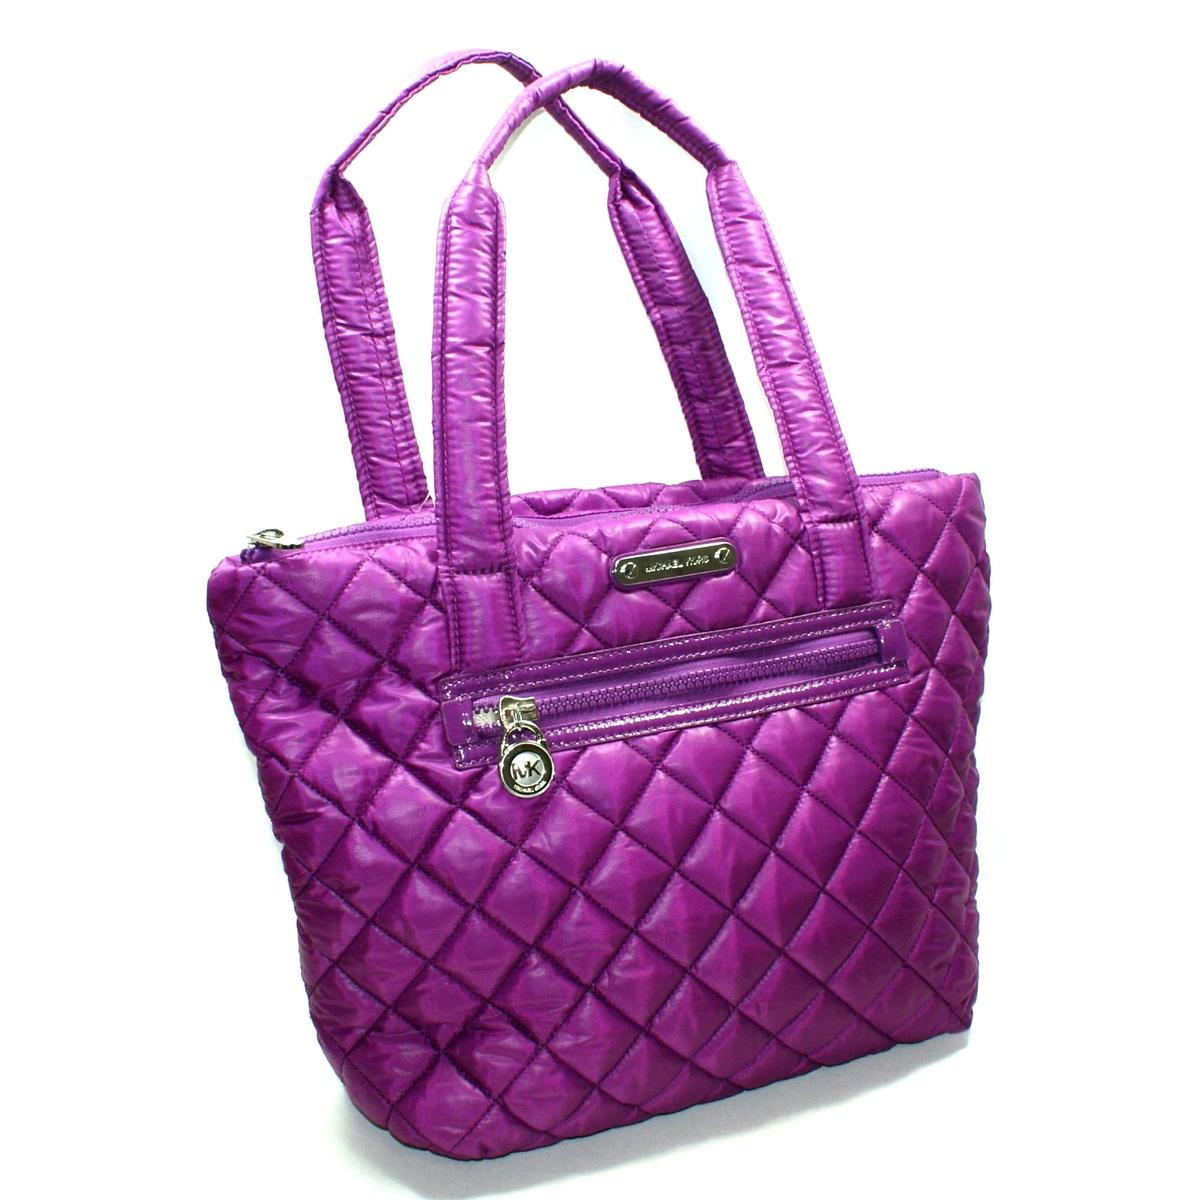 07afd517856af6 Home · Michael Kors · Sadie Quilted Navy Pomegranate Nylon Tote. CLICK  THUMBNAIL TO ZOOM. Found ...